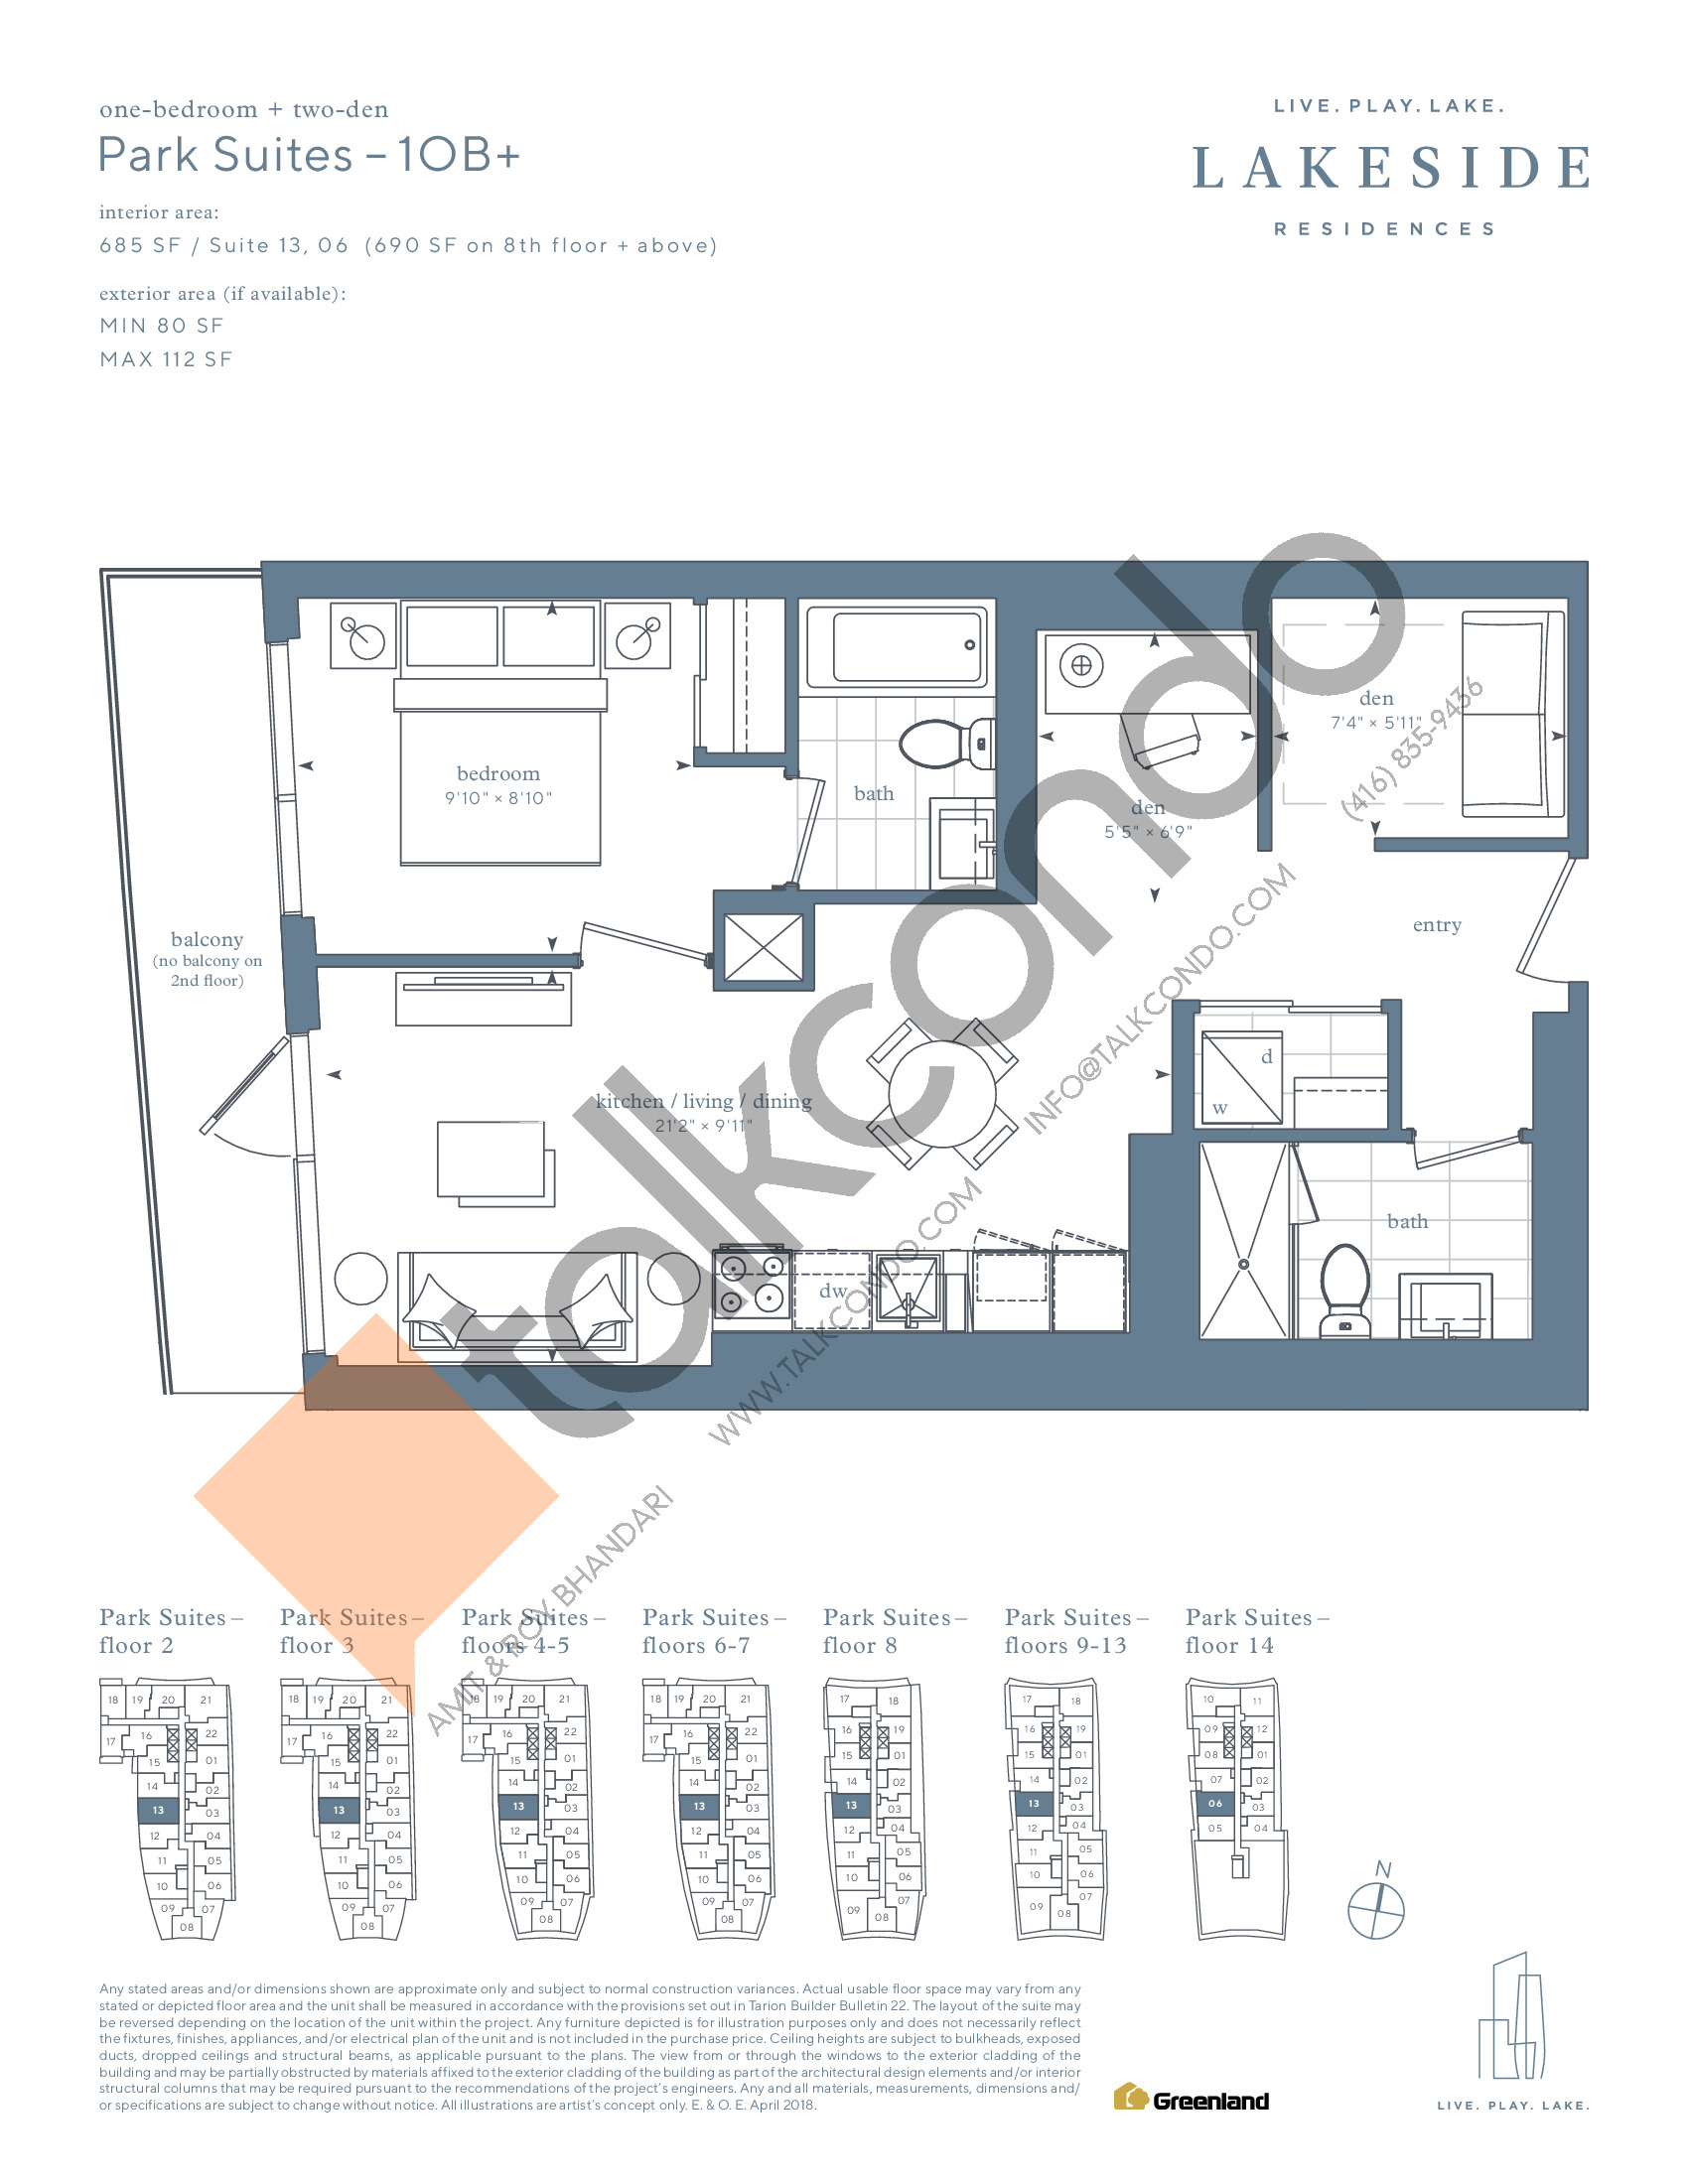 Park Suites - 1OB+ Floor Plan at Lakeside Residences - 685 sq.ft